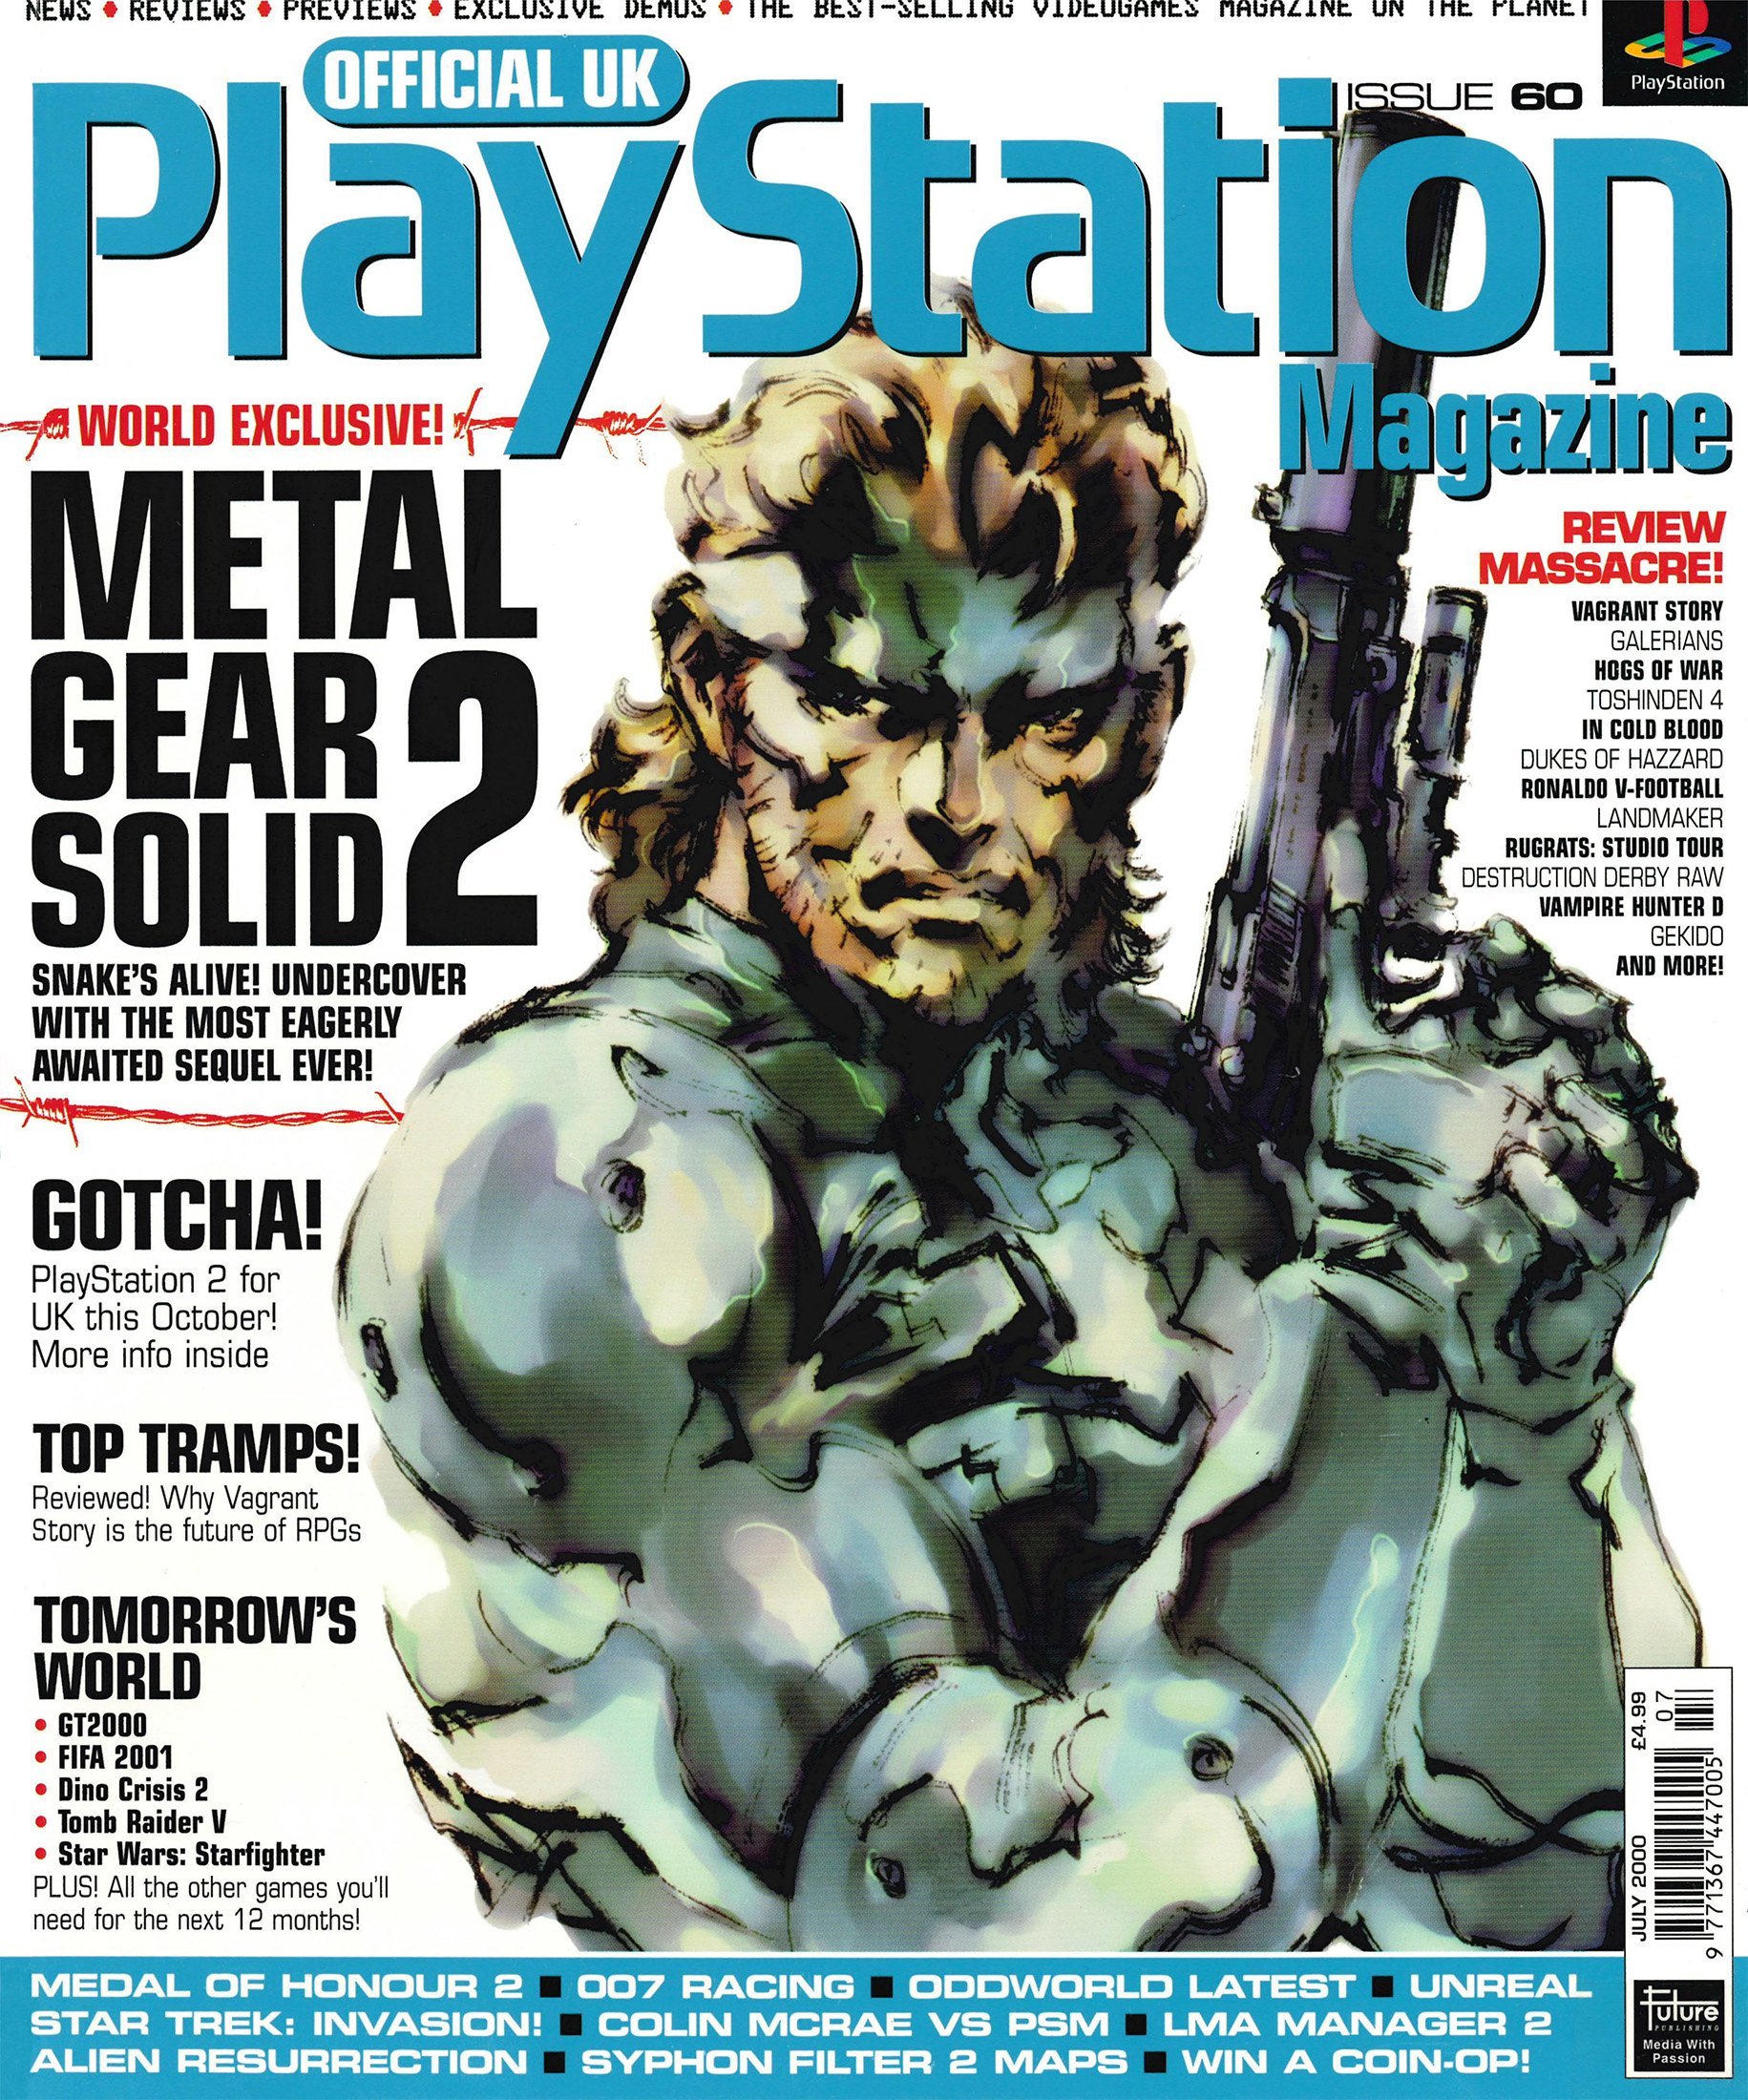 Official UK PlayStation Magazine Issue 060 (July 2000)